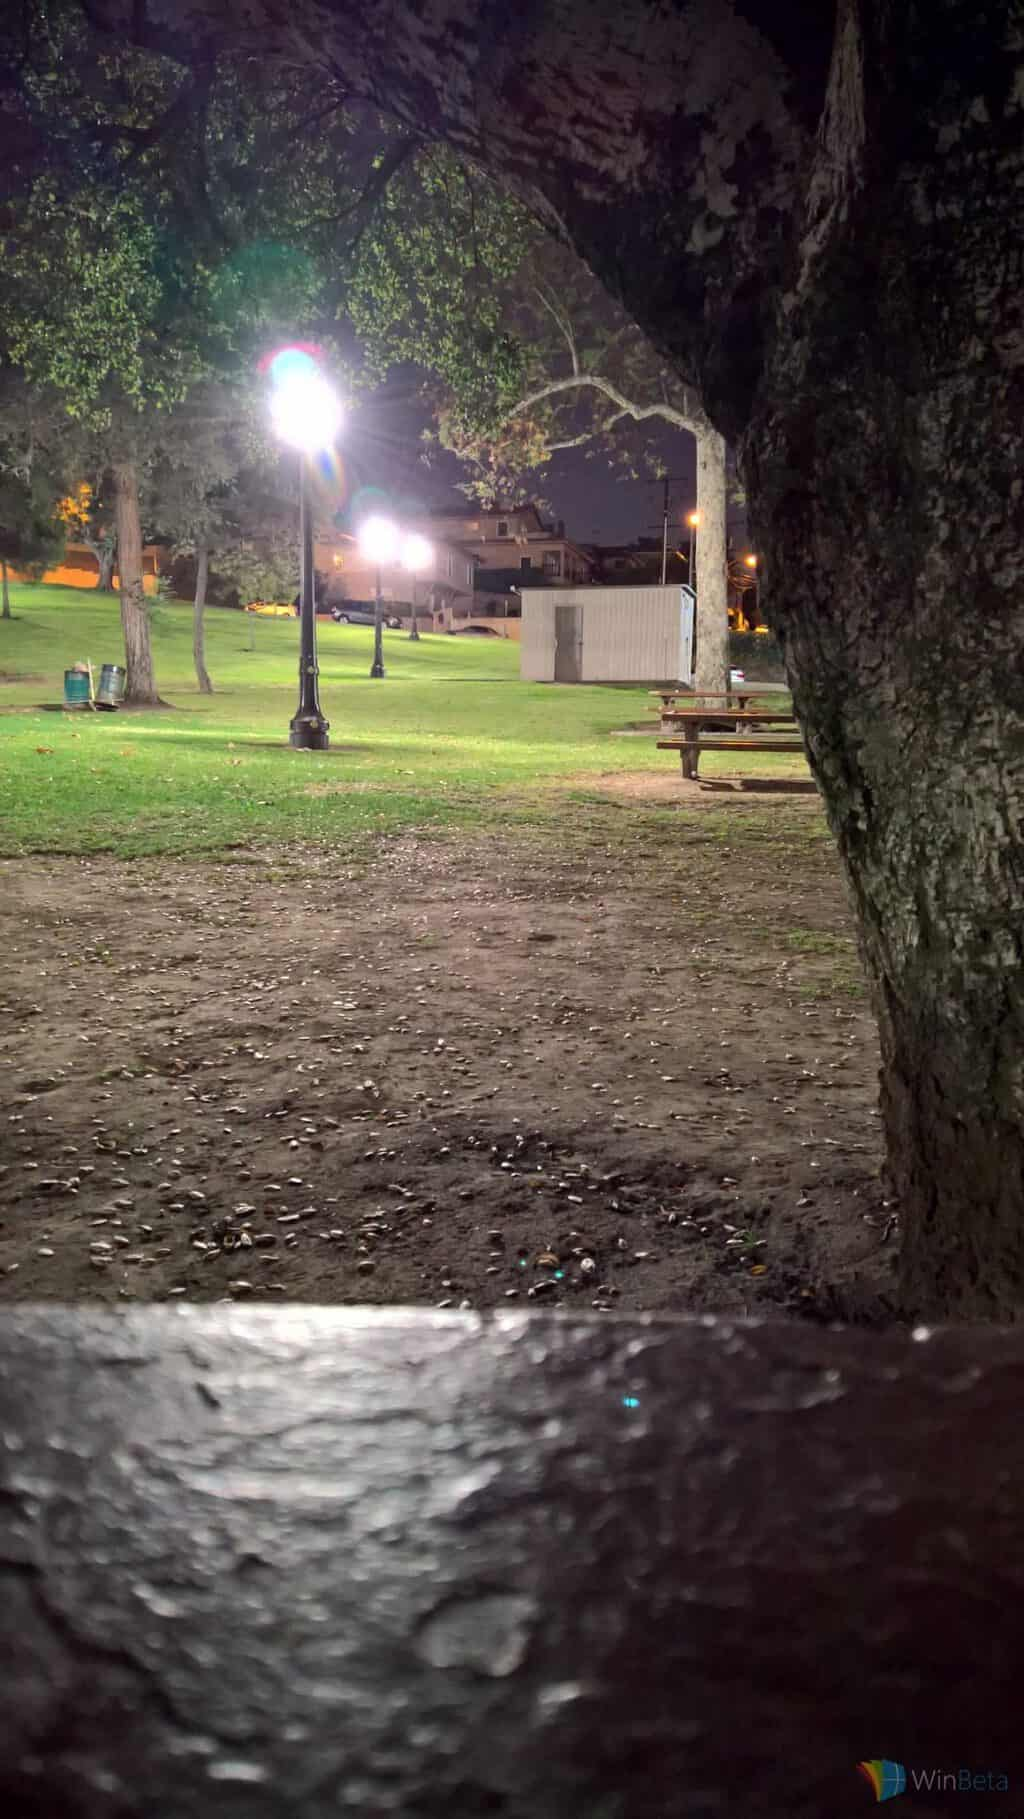 Lumia 950 manual shot in park at night.